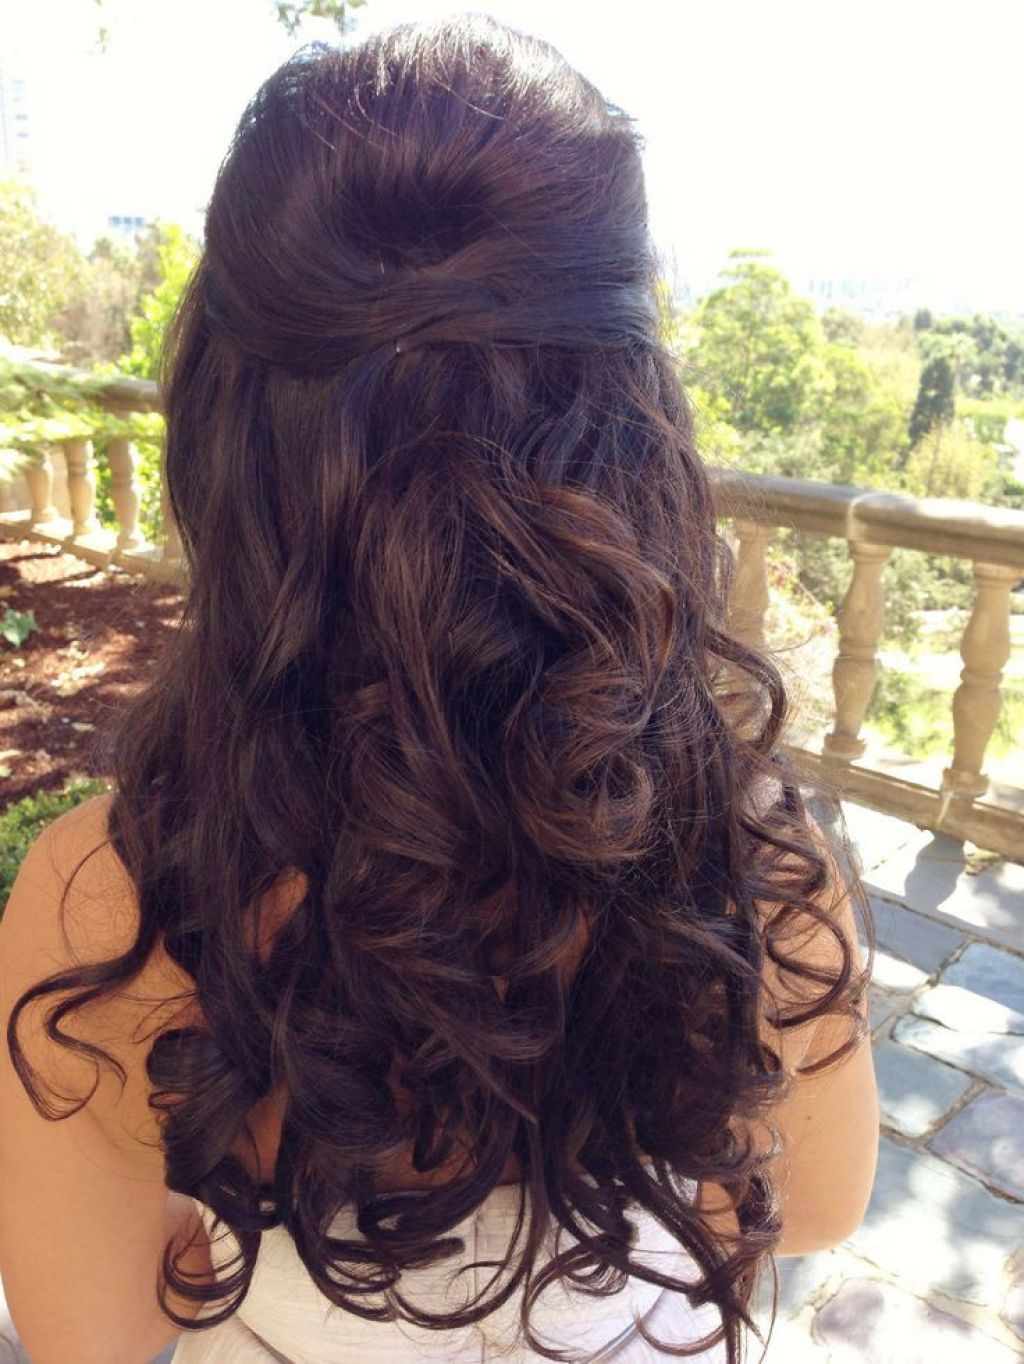 image result for bride hairstyles half up half down | wedding